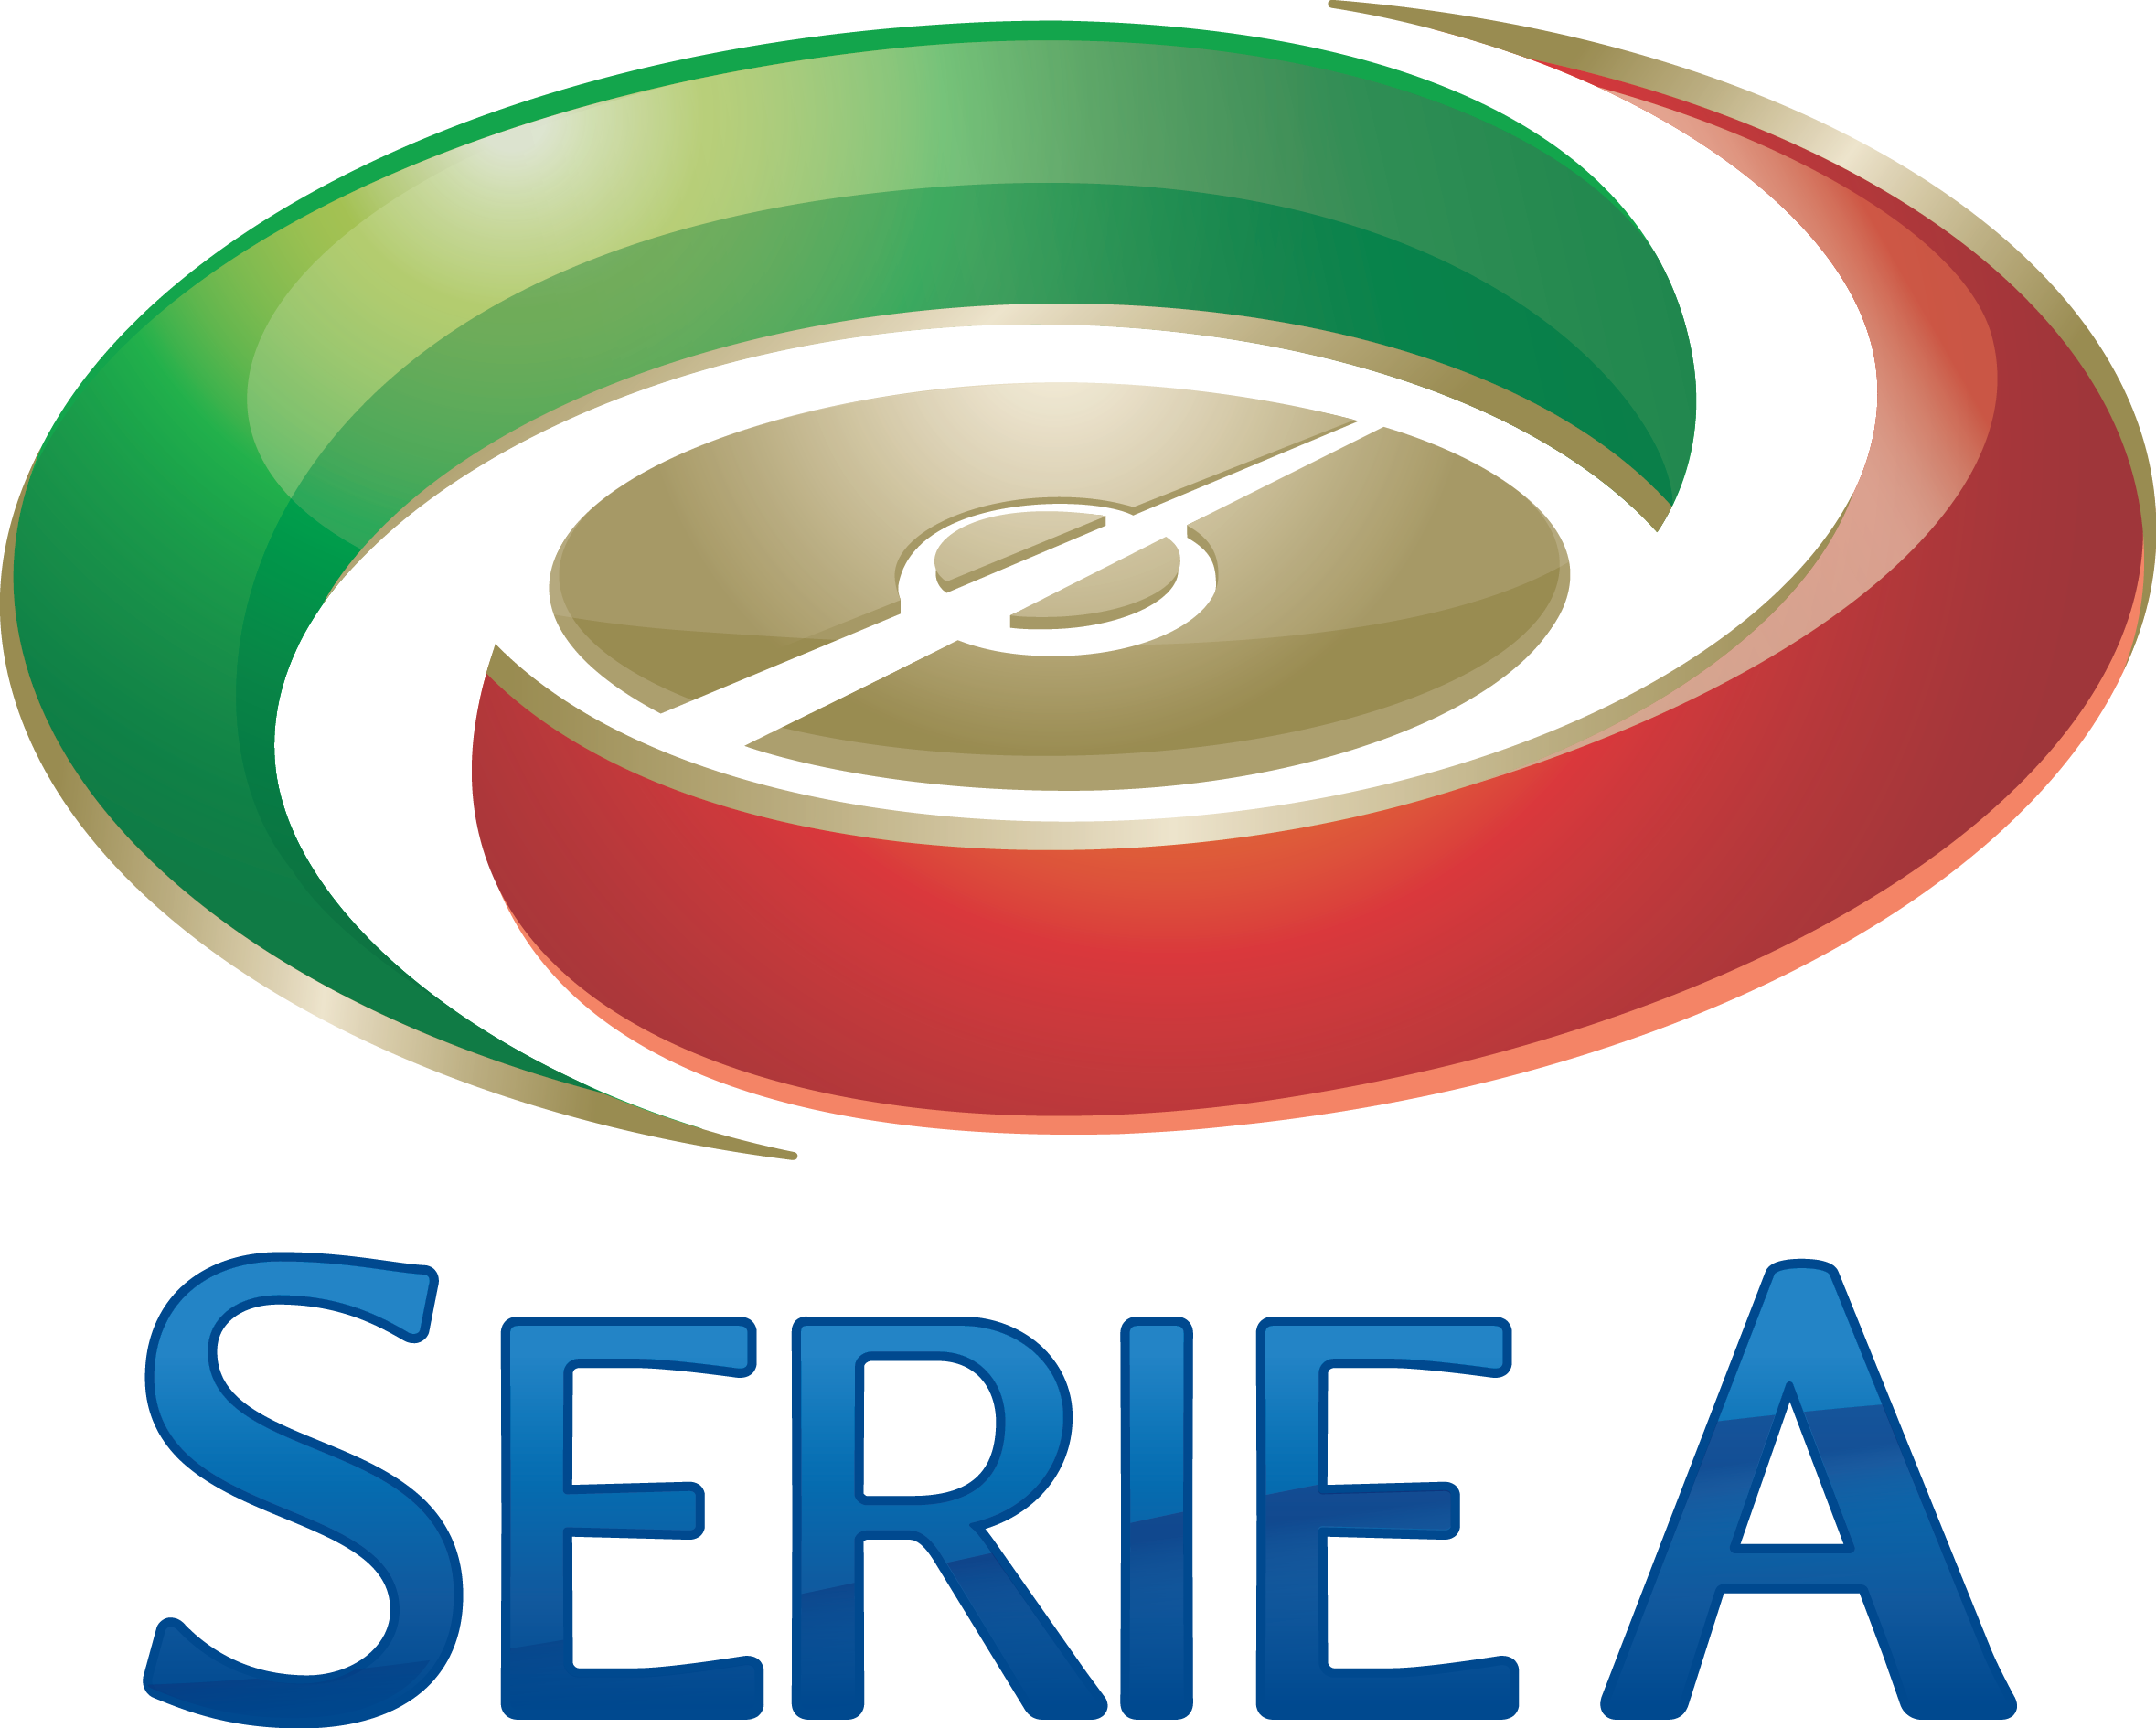 Udinese vs AC Milan 2-1 All goals and highlights 25/04/2015